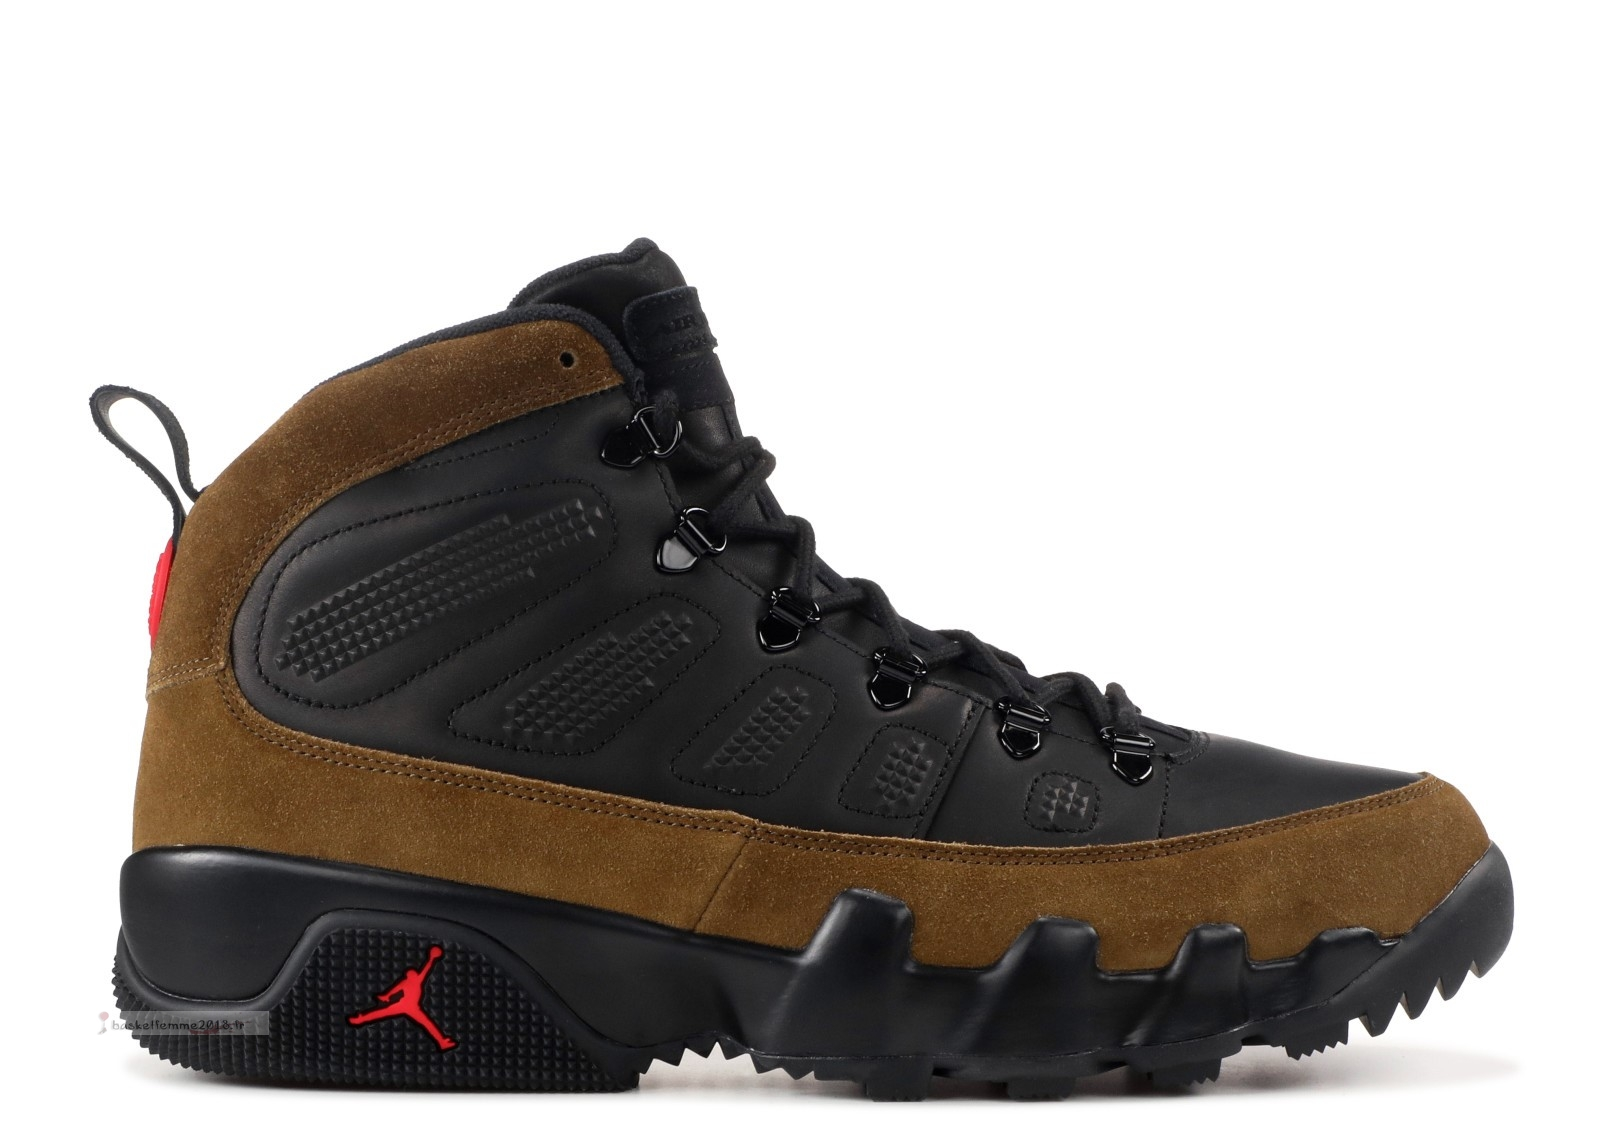 Air Jordan 9 Retro Boot Nrg Noir Rouge (ar4491-012) Chaussure de Basket